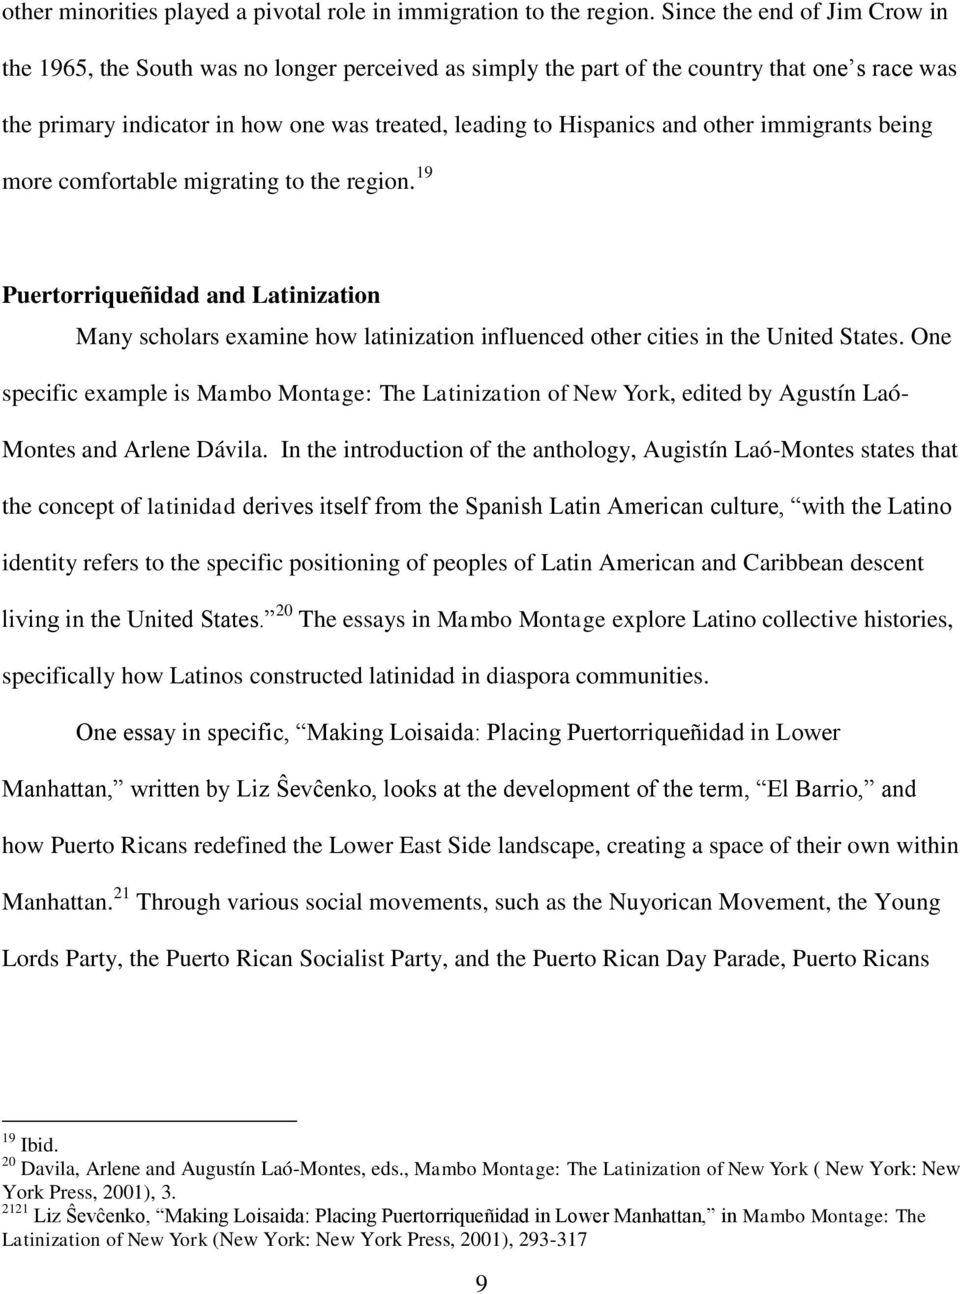 other immigrants being more comfortable migrating to the region. 19 Puertorriqueñidad and Latinization Many scholars examine how latinization influenced other cities in the United States.